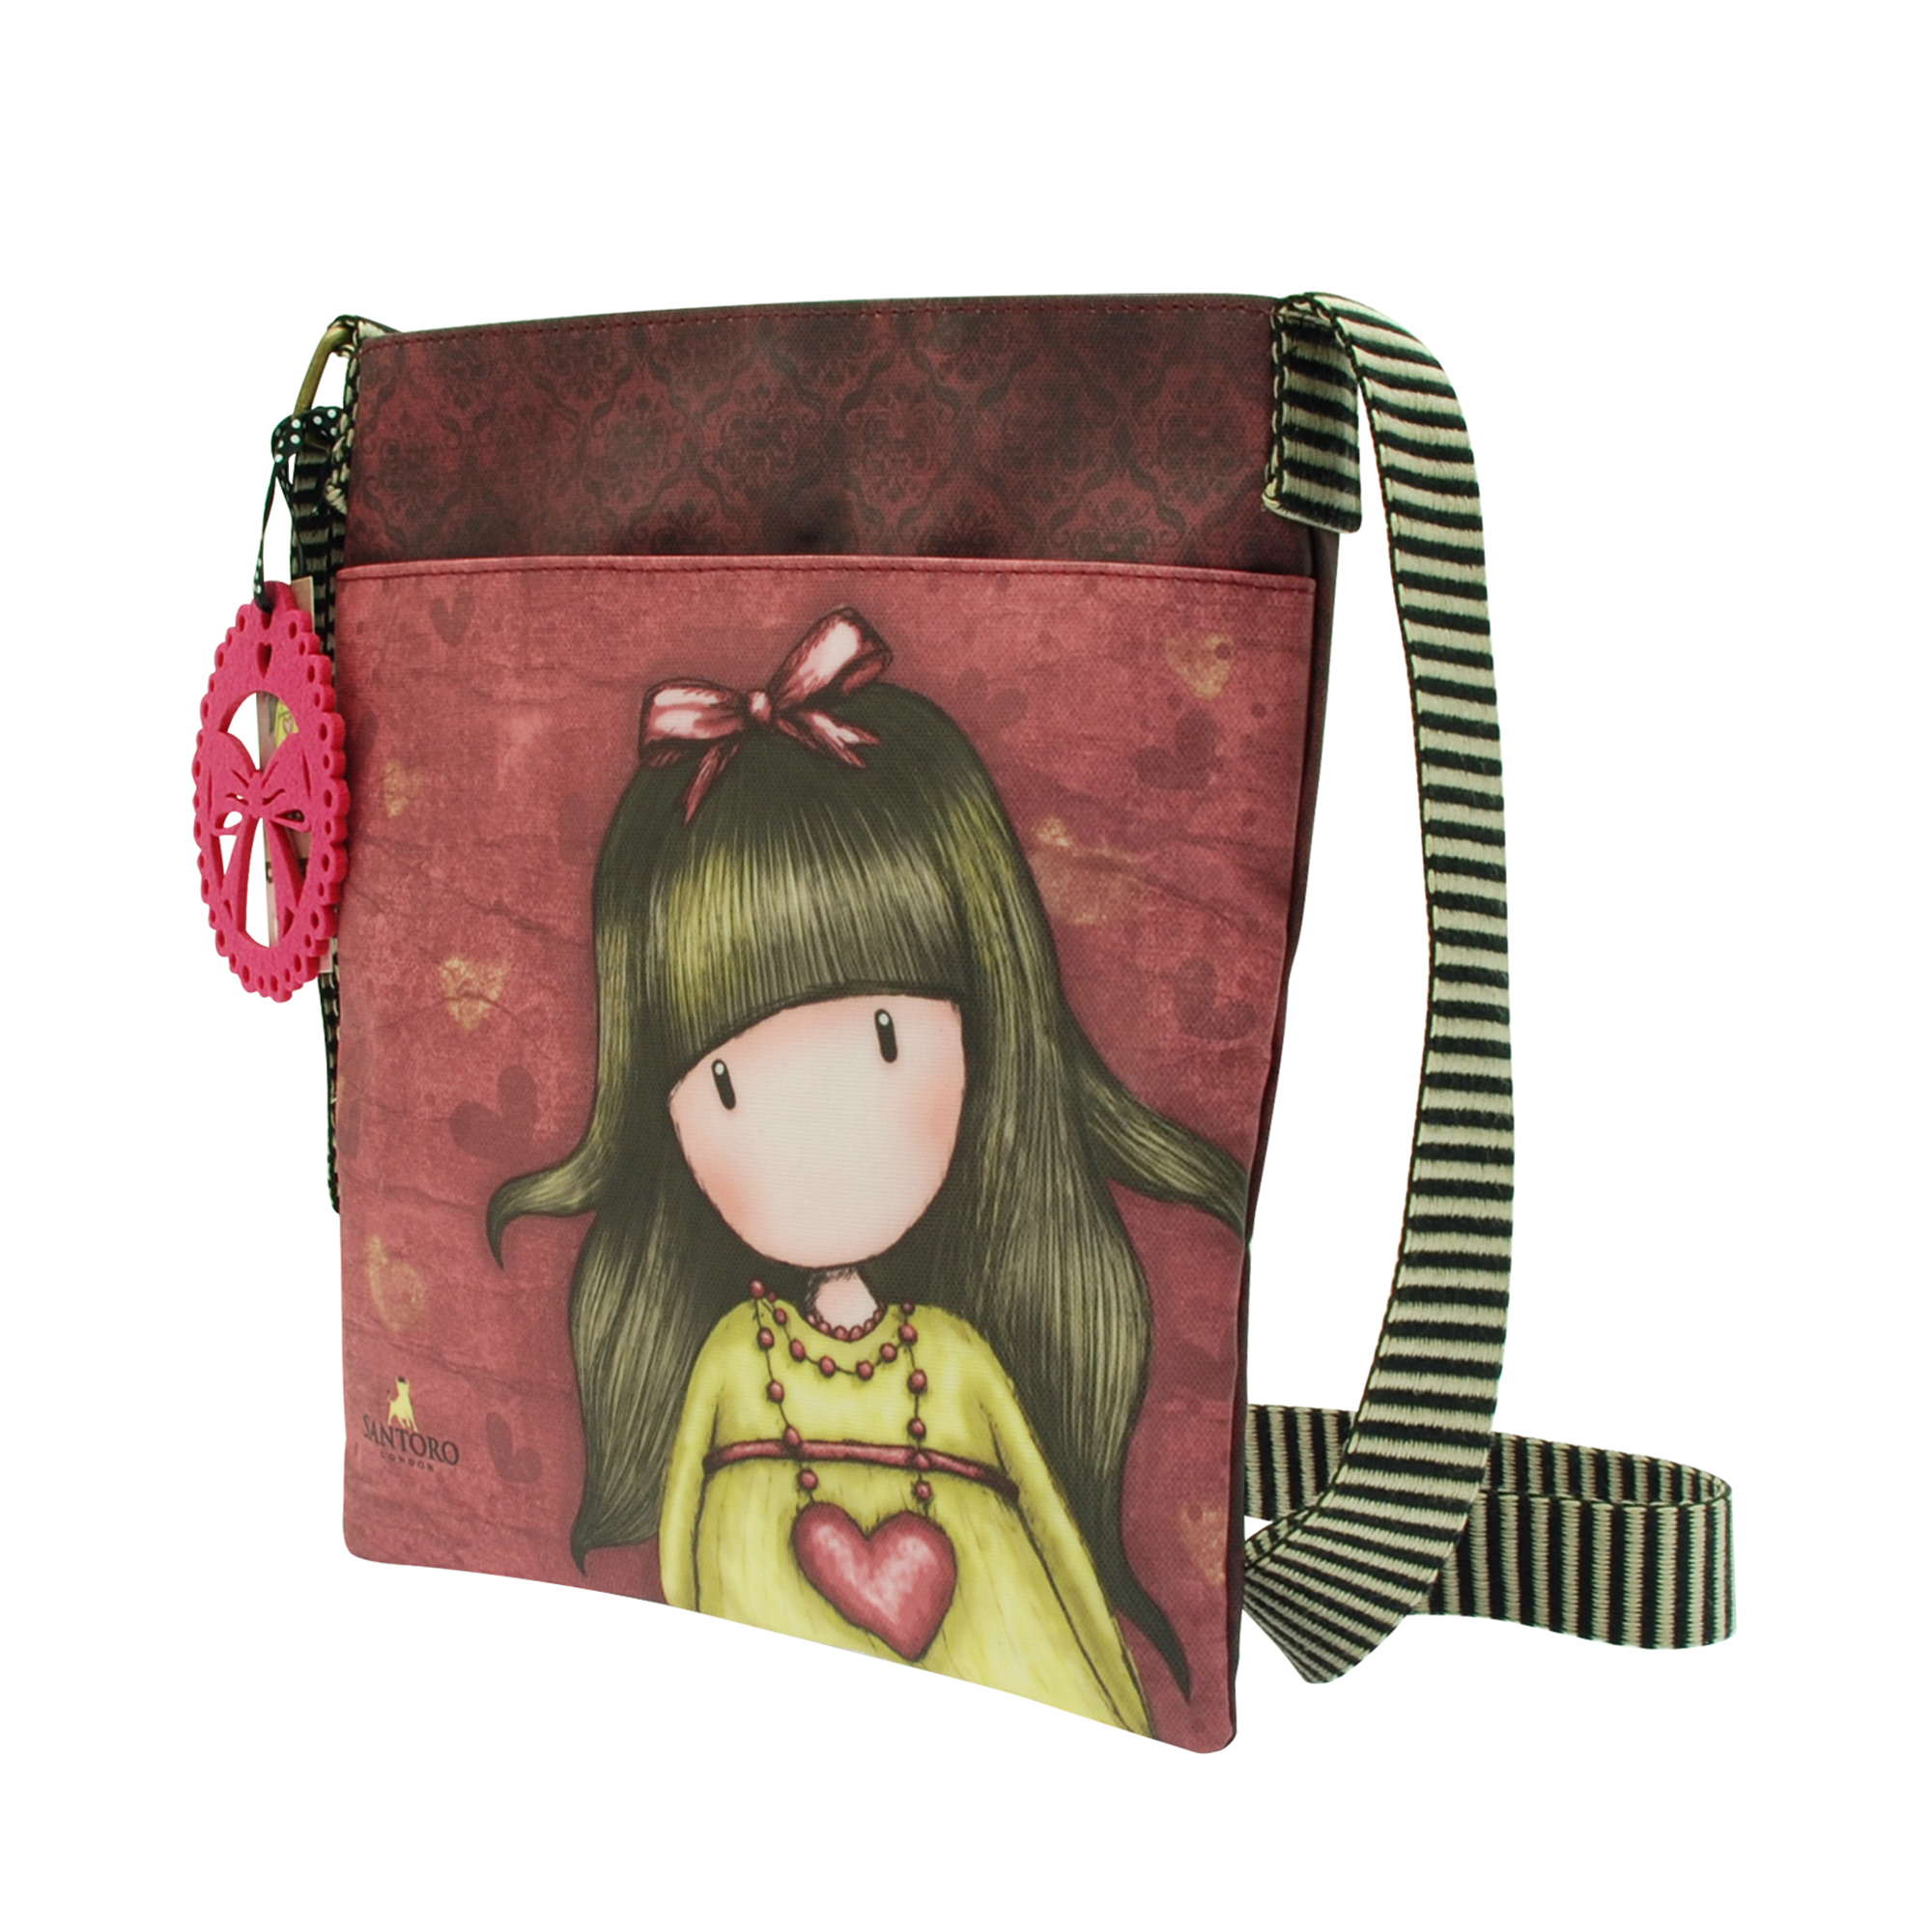 Gorjuss Heartfelt Flat Cross Body Bag